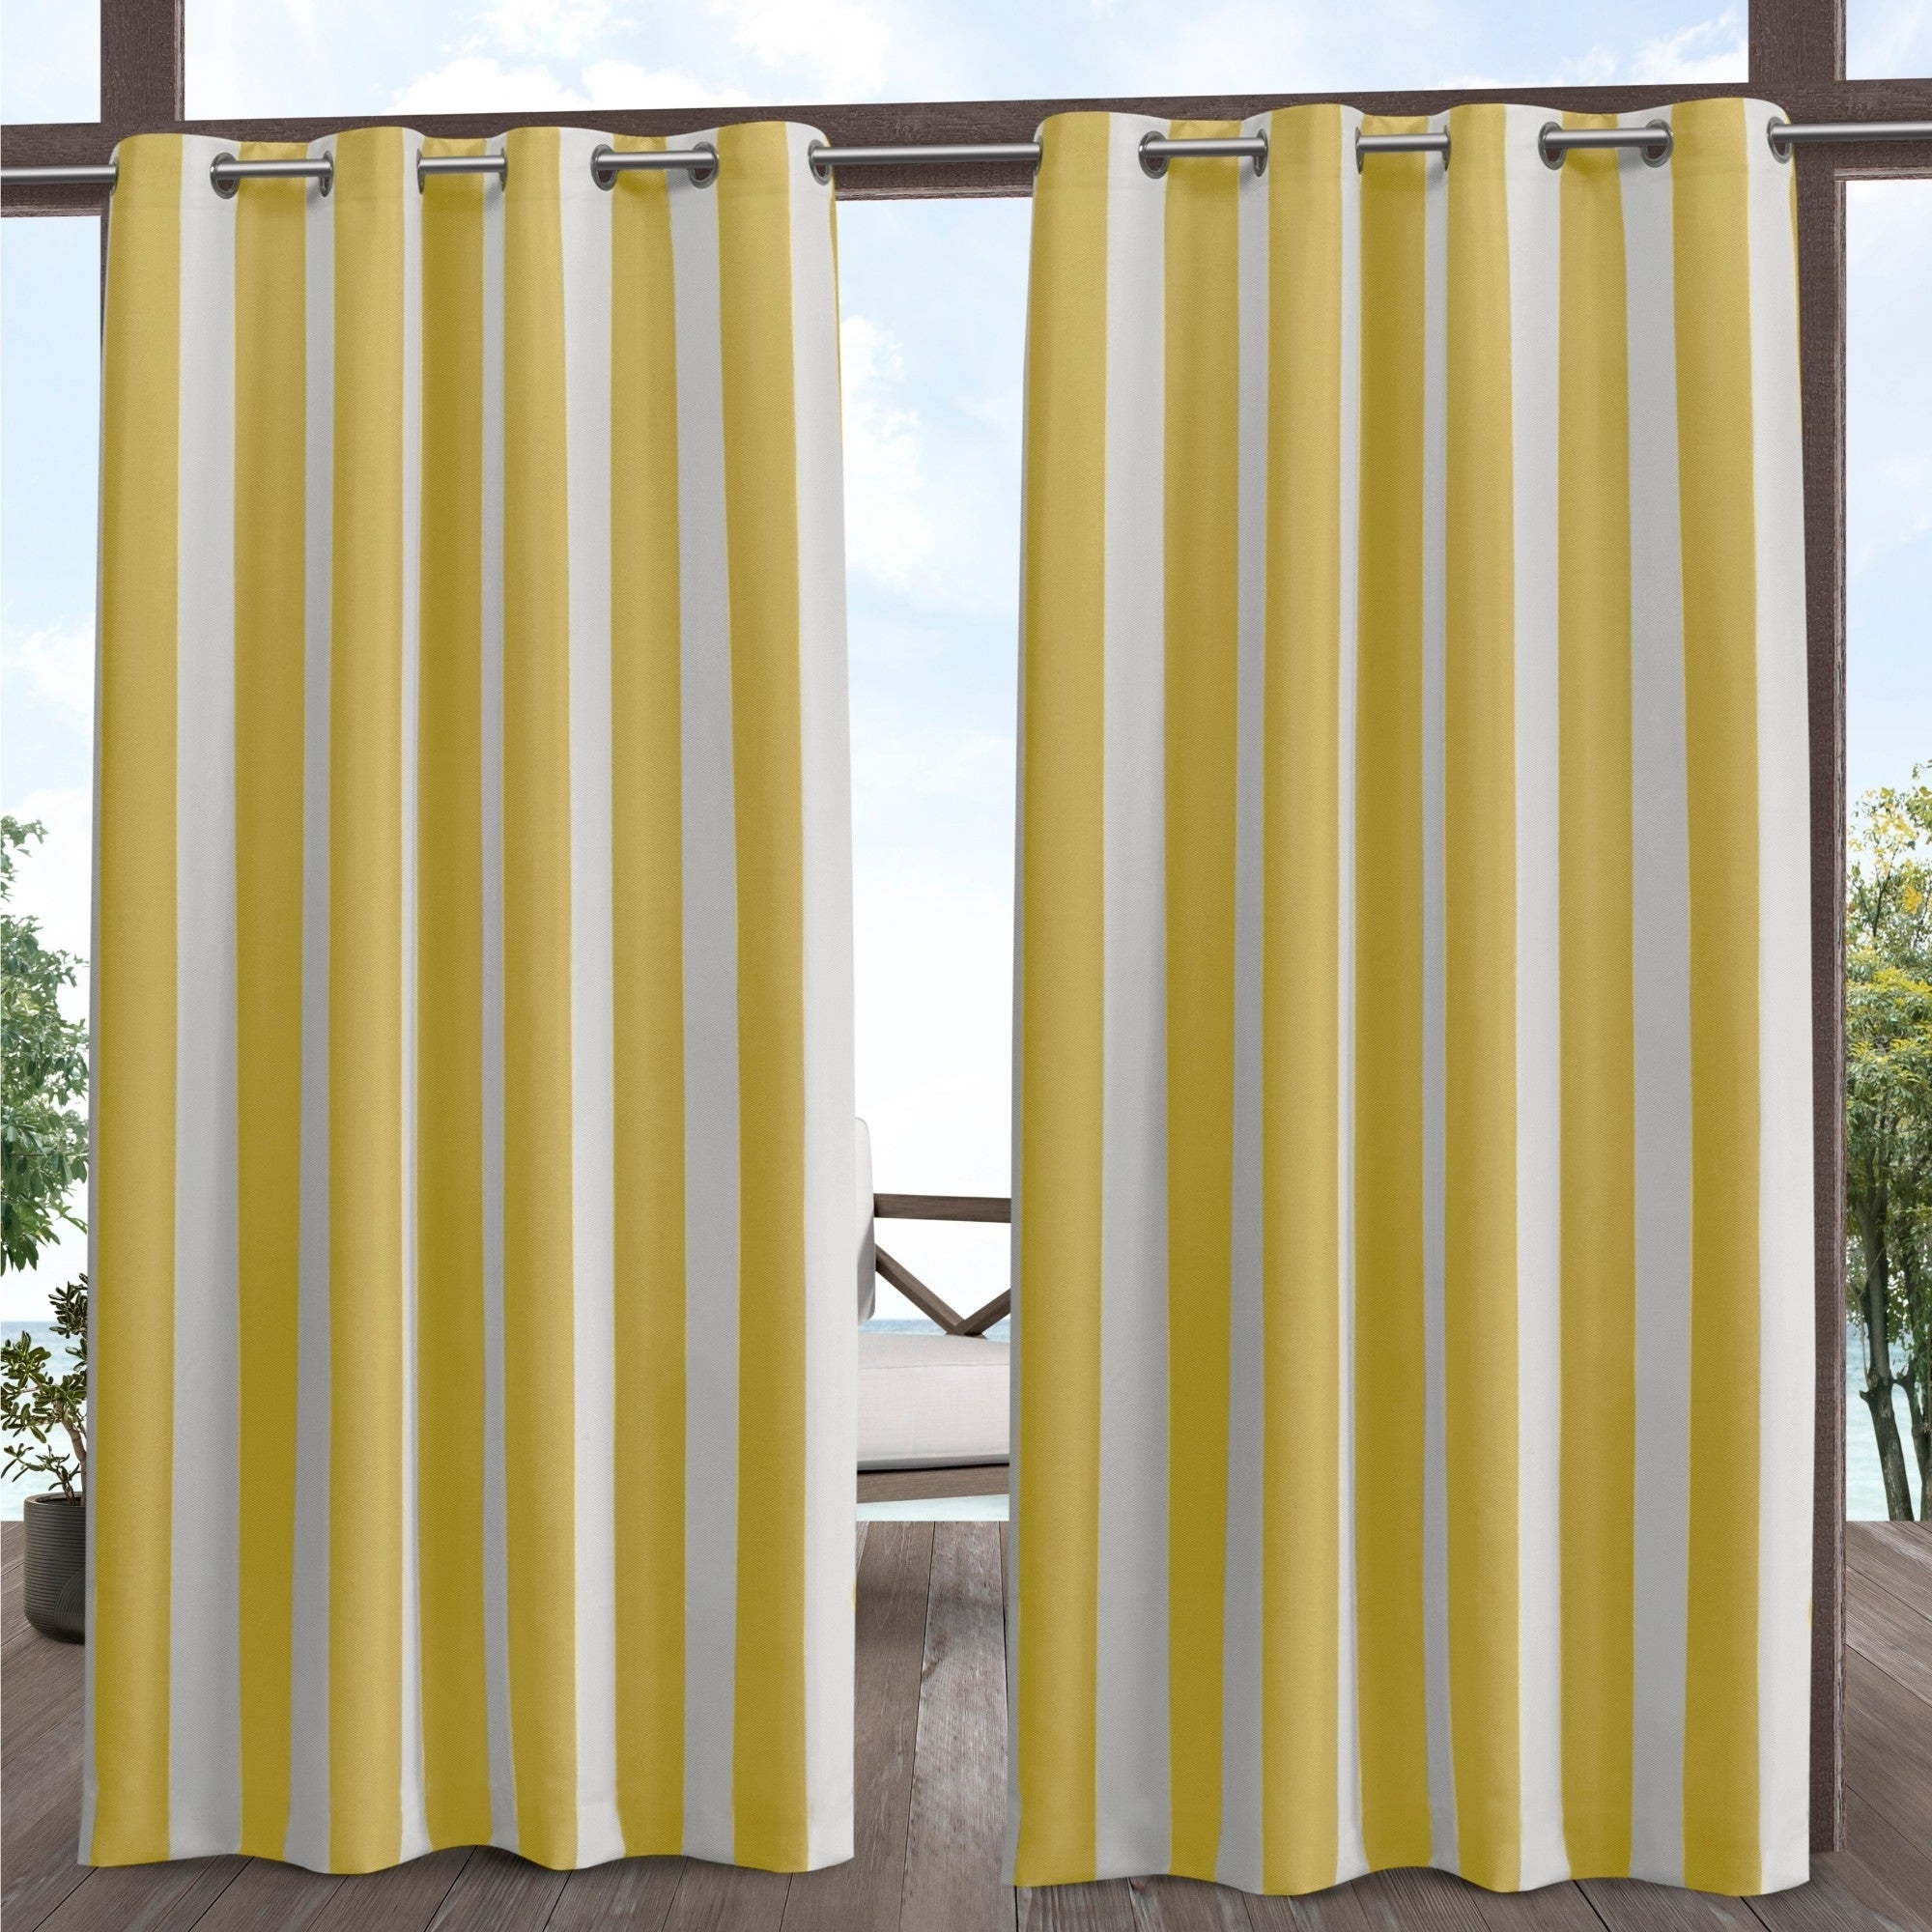 Indoor/outdoor Solid Cabana Grommet Top Curtain Panel Pairs Regarding Well Known Ati Home Canopy Stripe Outdoor Grommet Top Curtain Panel Pair (View 9 of 20)